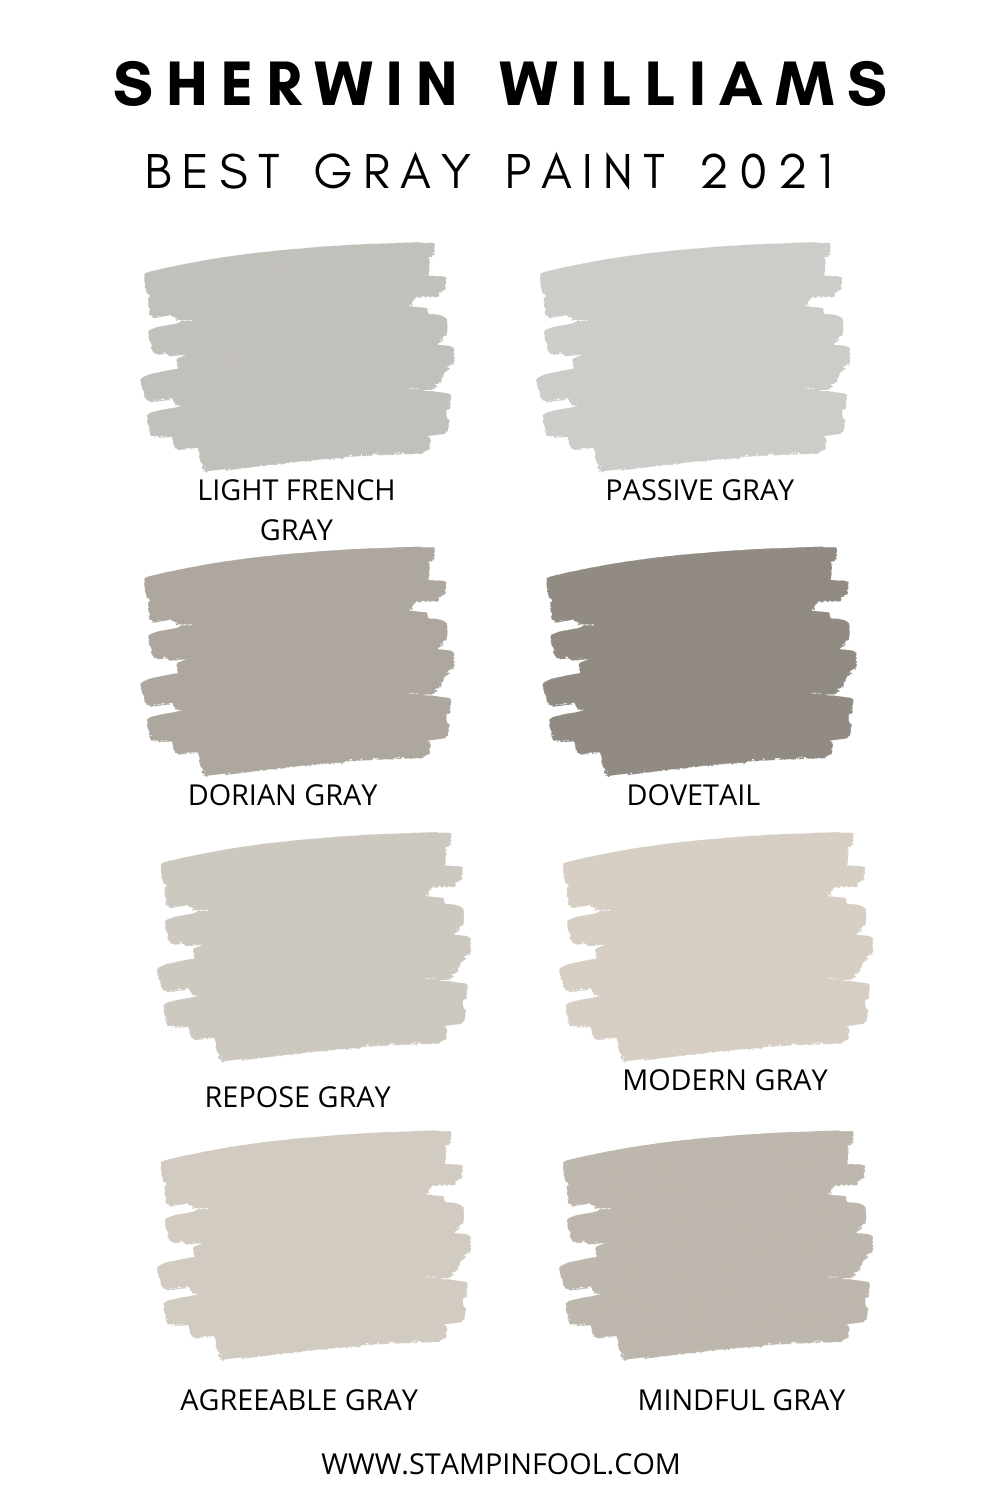 The Best Sherwin Williams Gray Paint Colors in 20   StampinFool.com